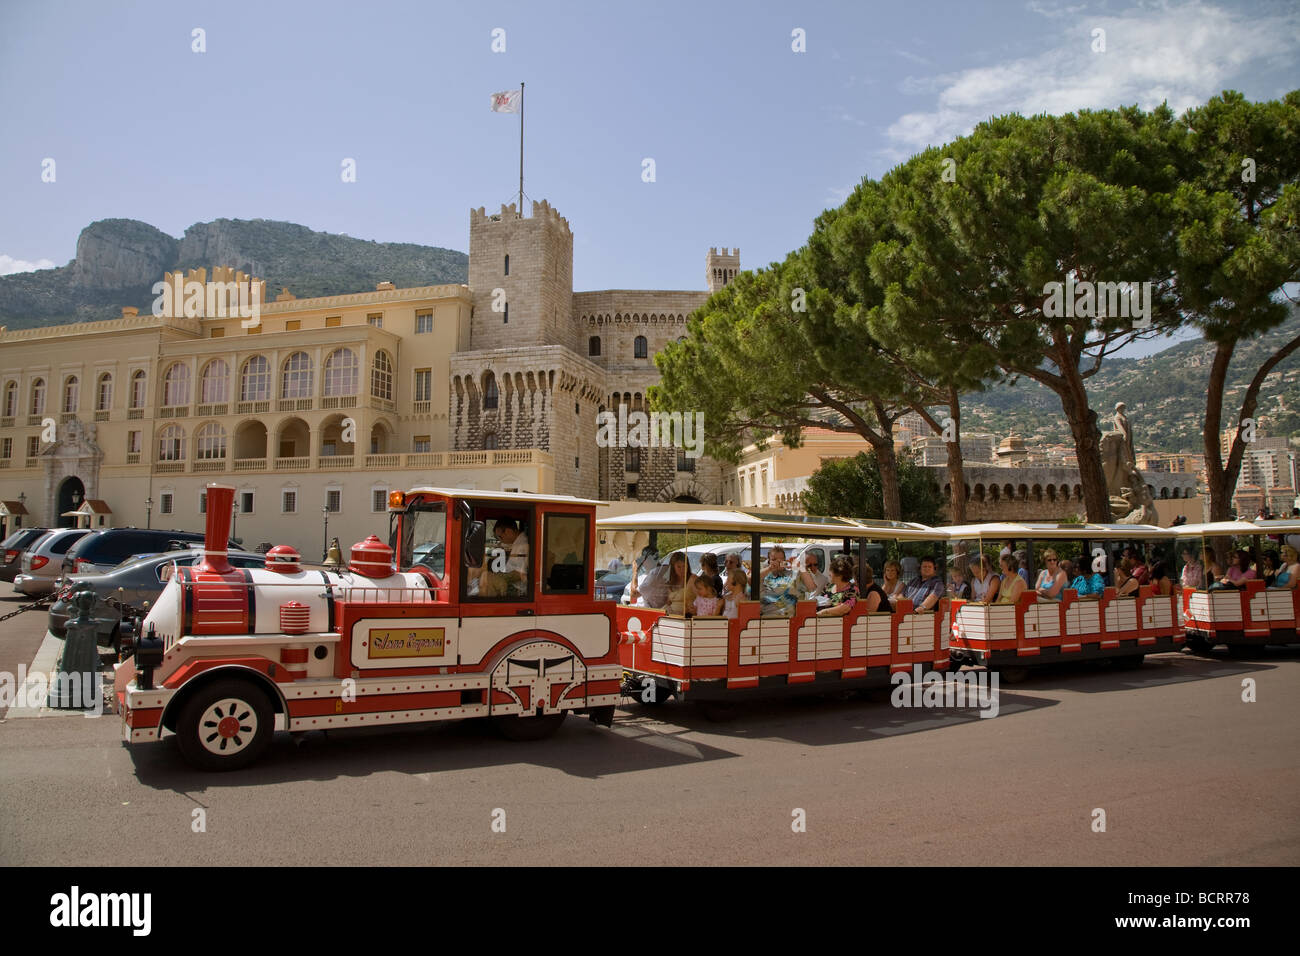 Tourist transport in shape of train in Monaco, South of France ...